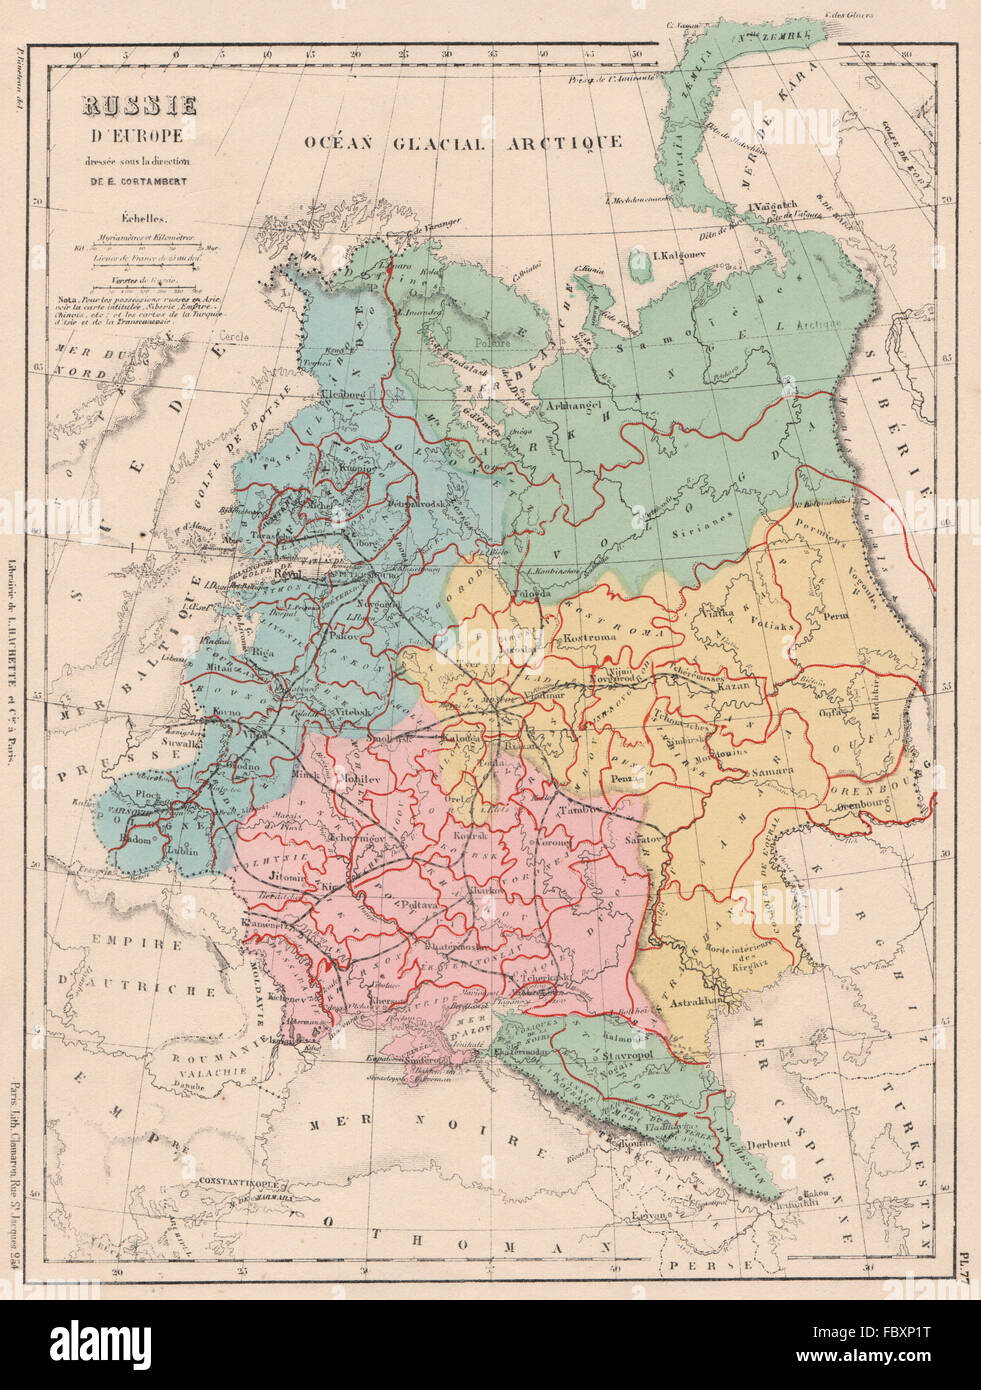 European Russia Showing Railways Oblasts Russia In Europe 1880